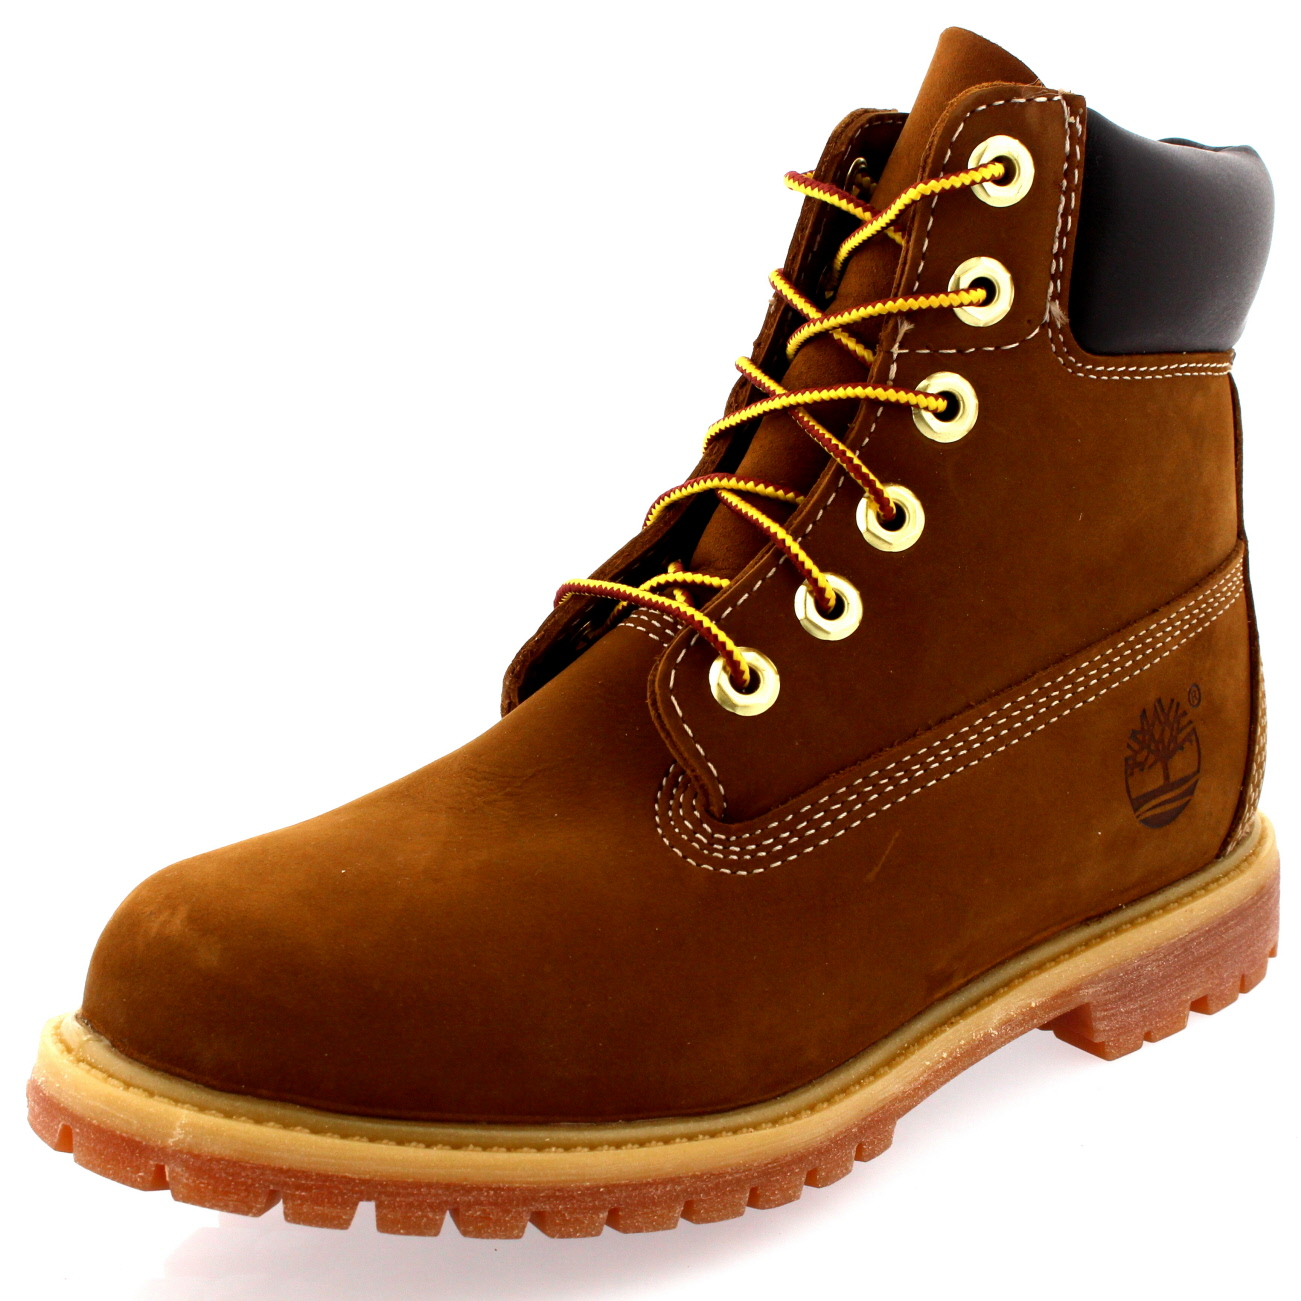 Beautiful Timberland Earthkeepers Rugged Original Leather Boots - Dark Brown | Free Delivery*